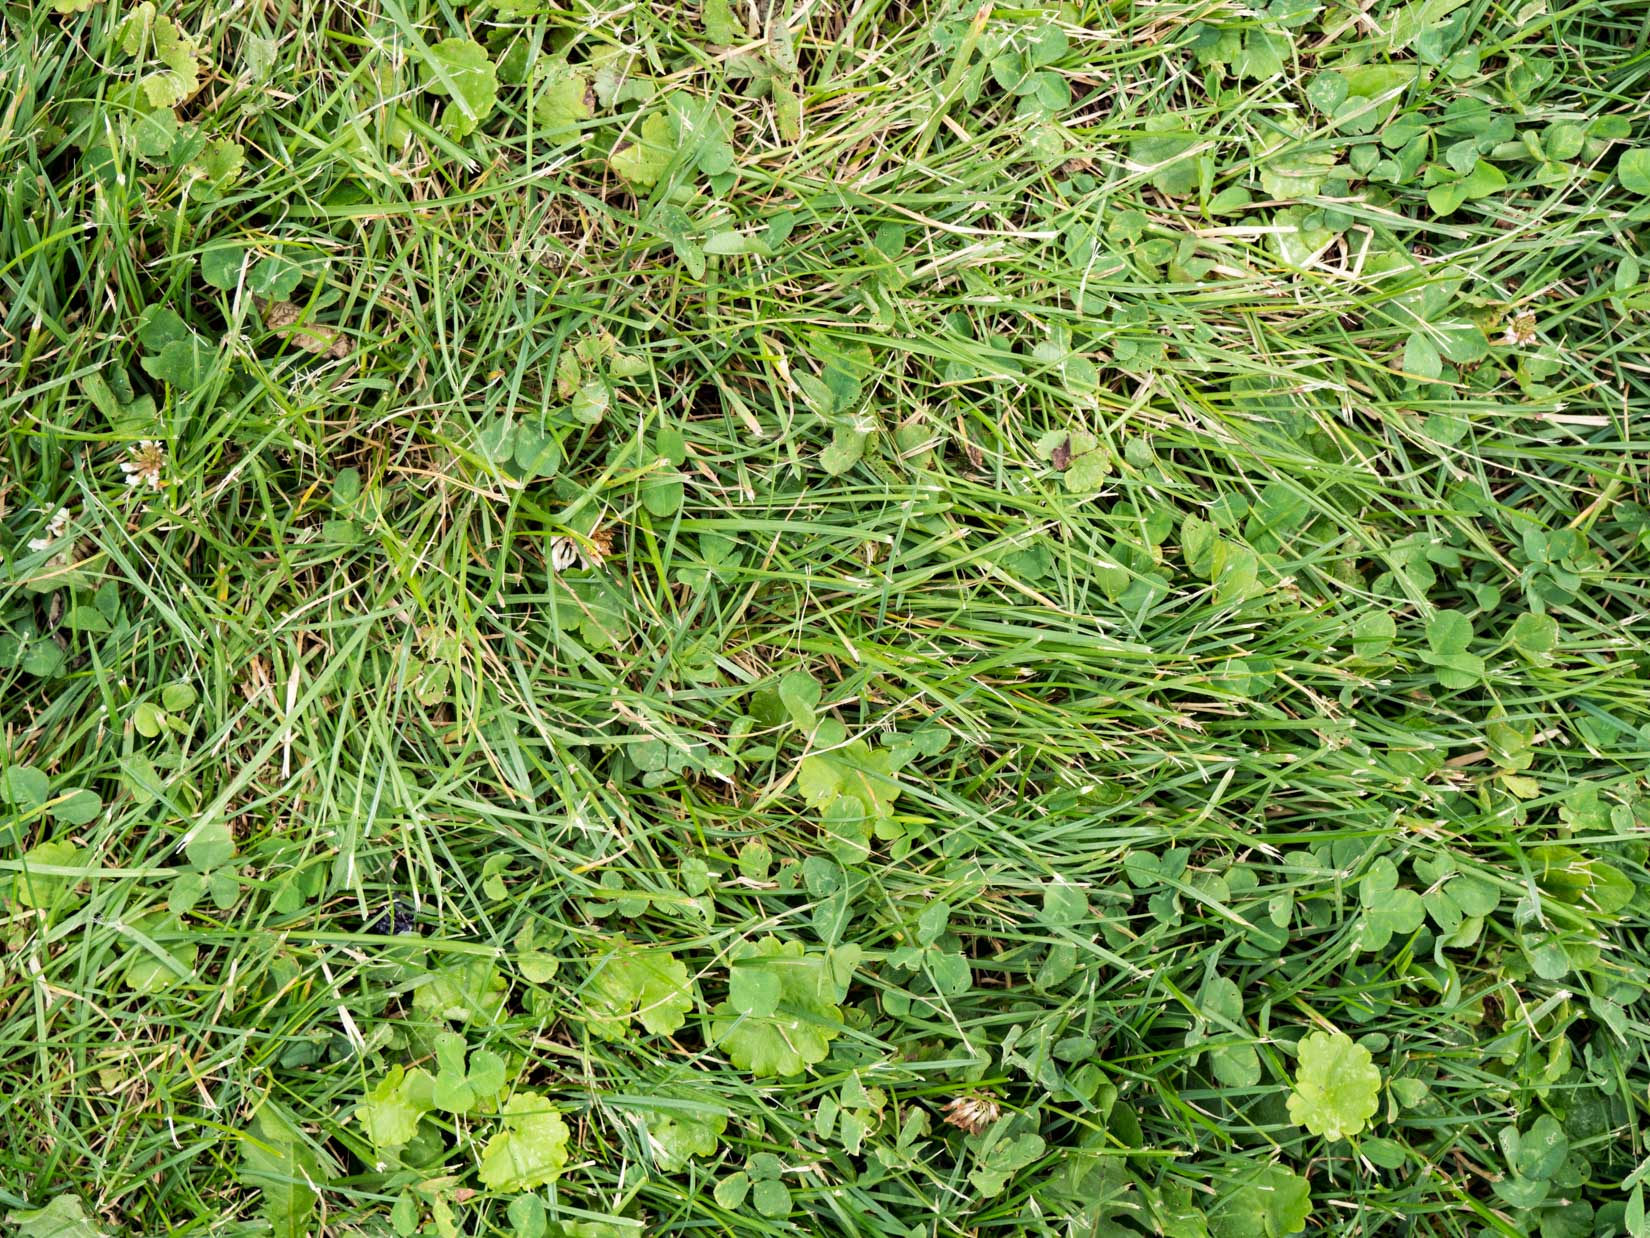 Grass and Leaves Texture